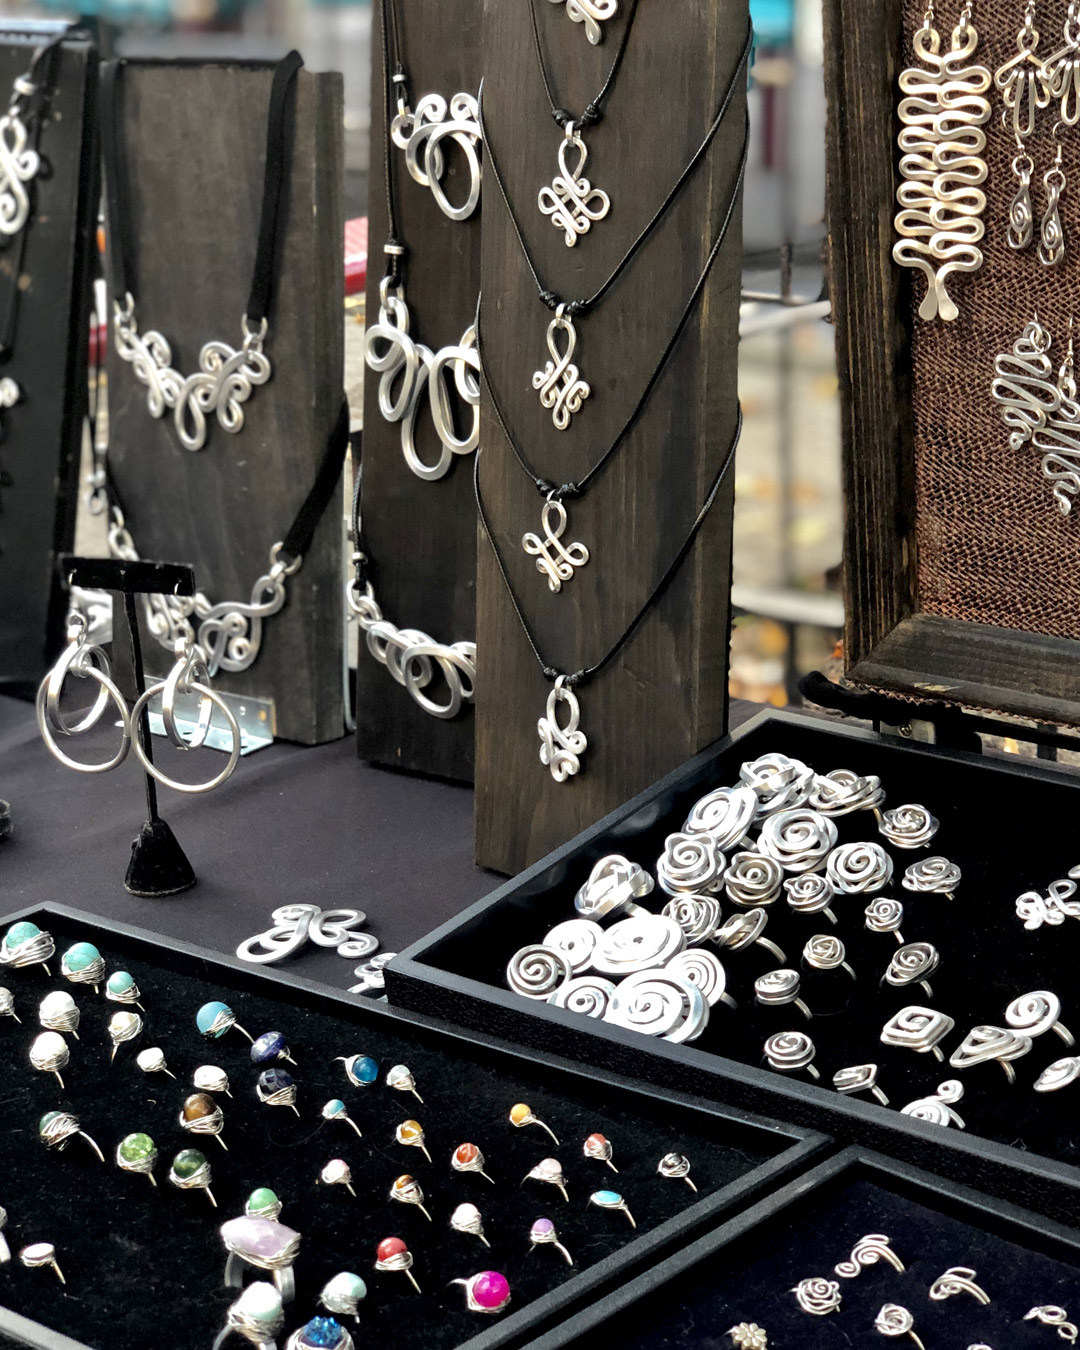 Marketplace Mogul Vendor Selilng Sterling Silver Jewelry at Park Slope 7th Avenue